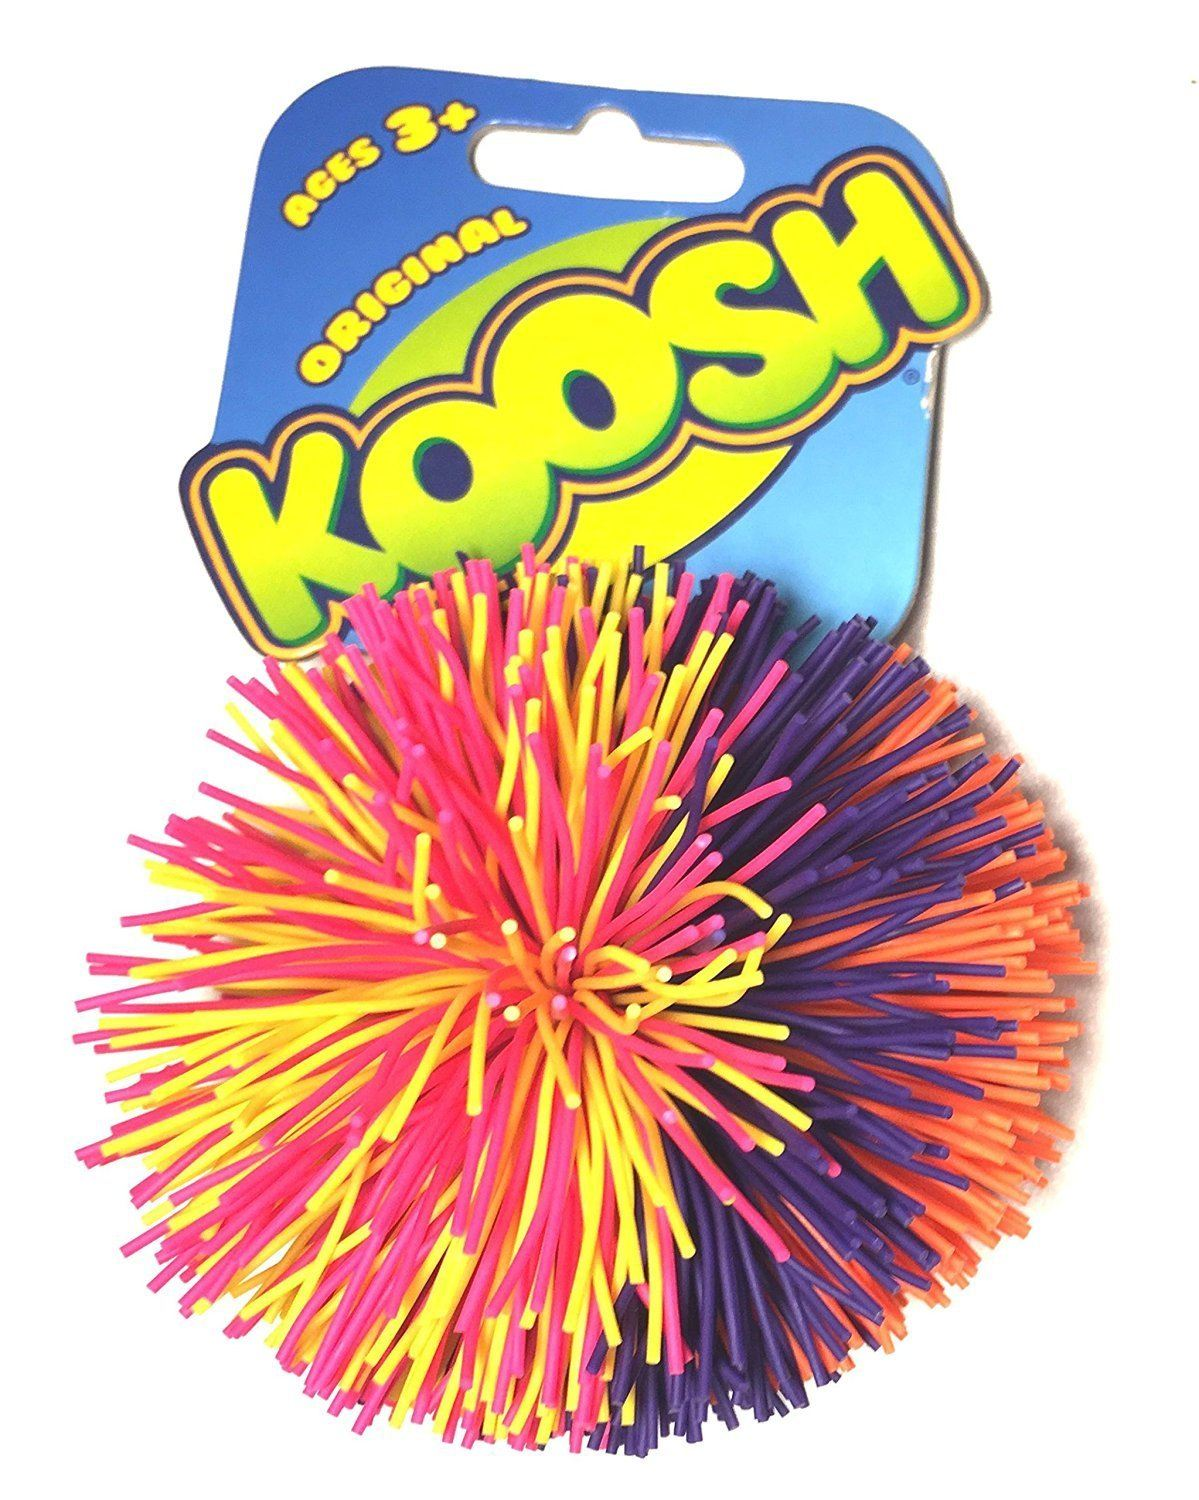 Koosh ball toy